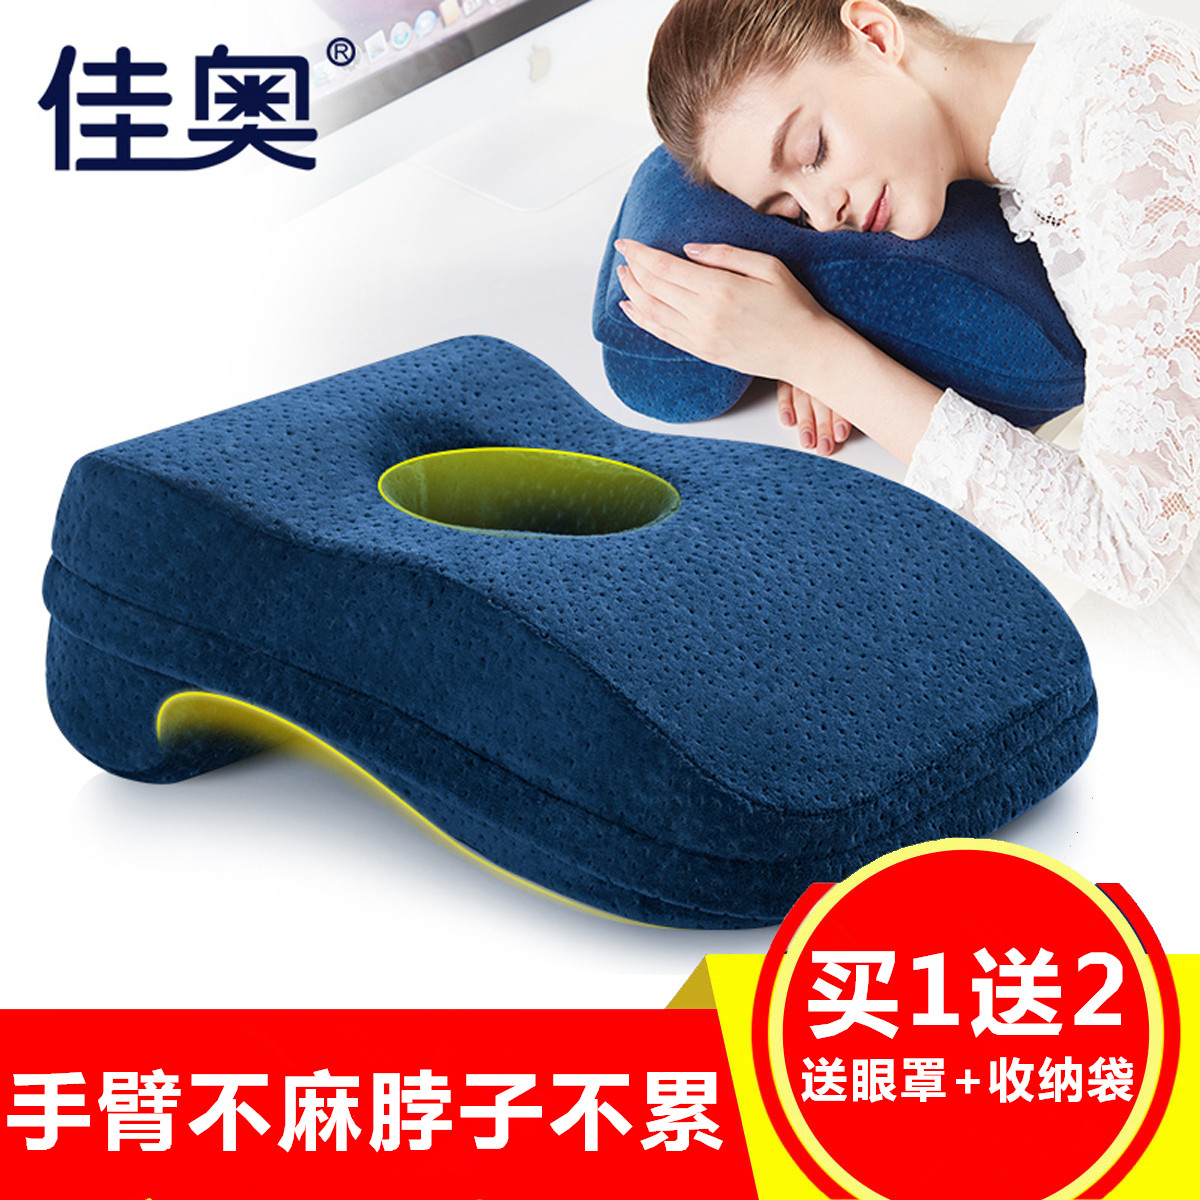 office nap pillow. Guile-office Napping Pillow Lay Sleeping For Students-classroom To Sleep Artifact NAP Lunch Break Office Nap